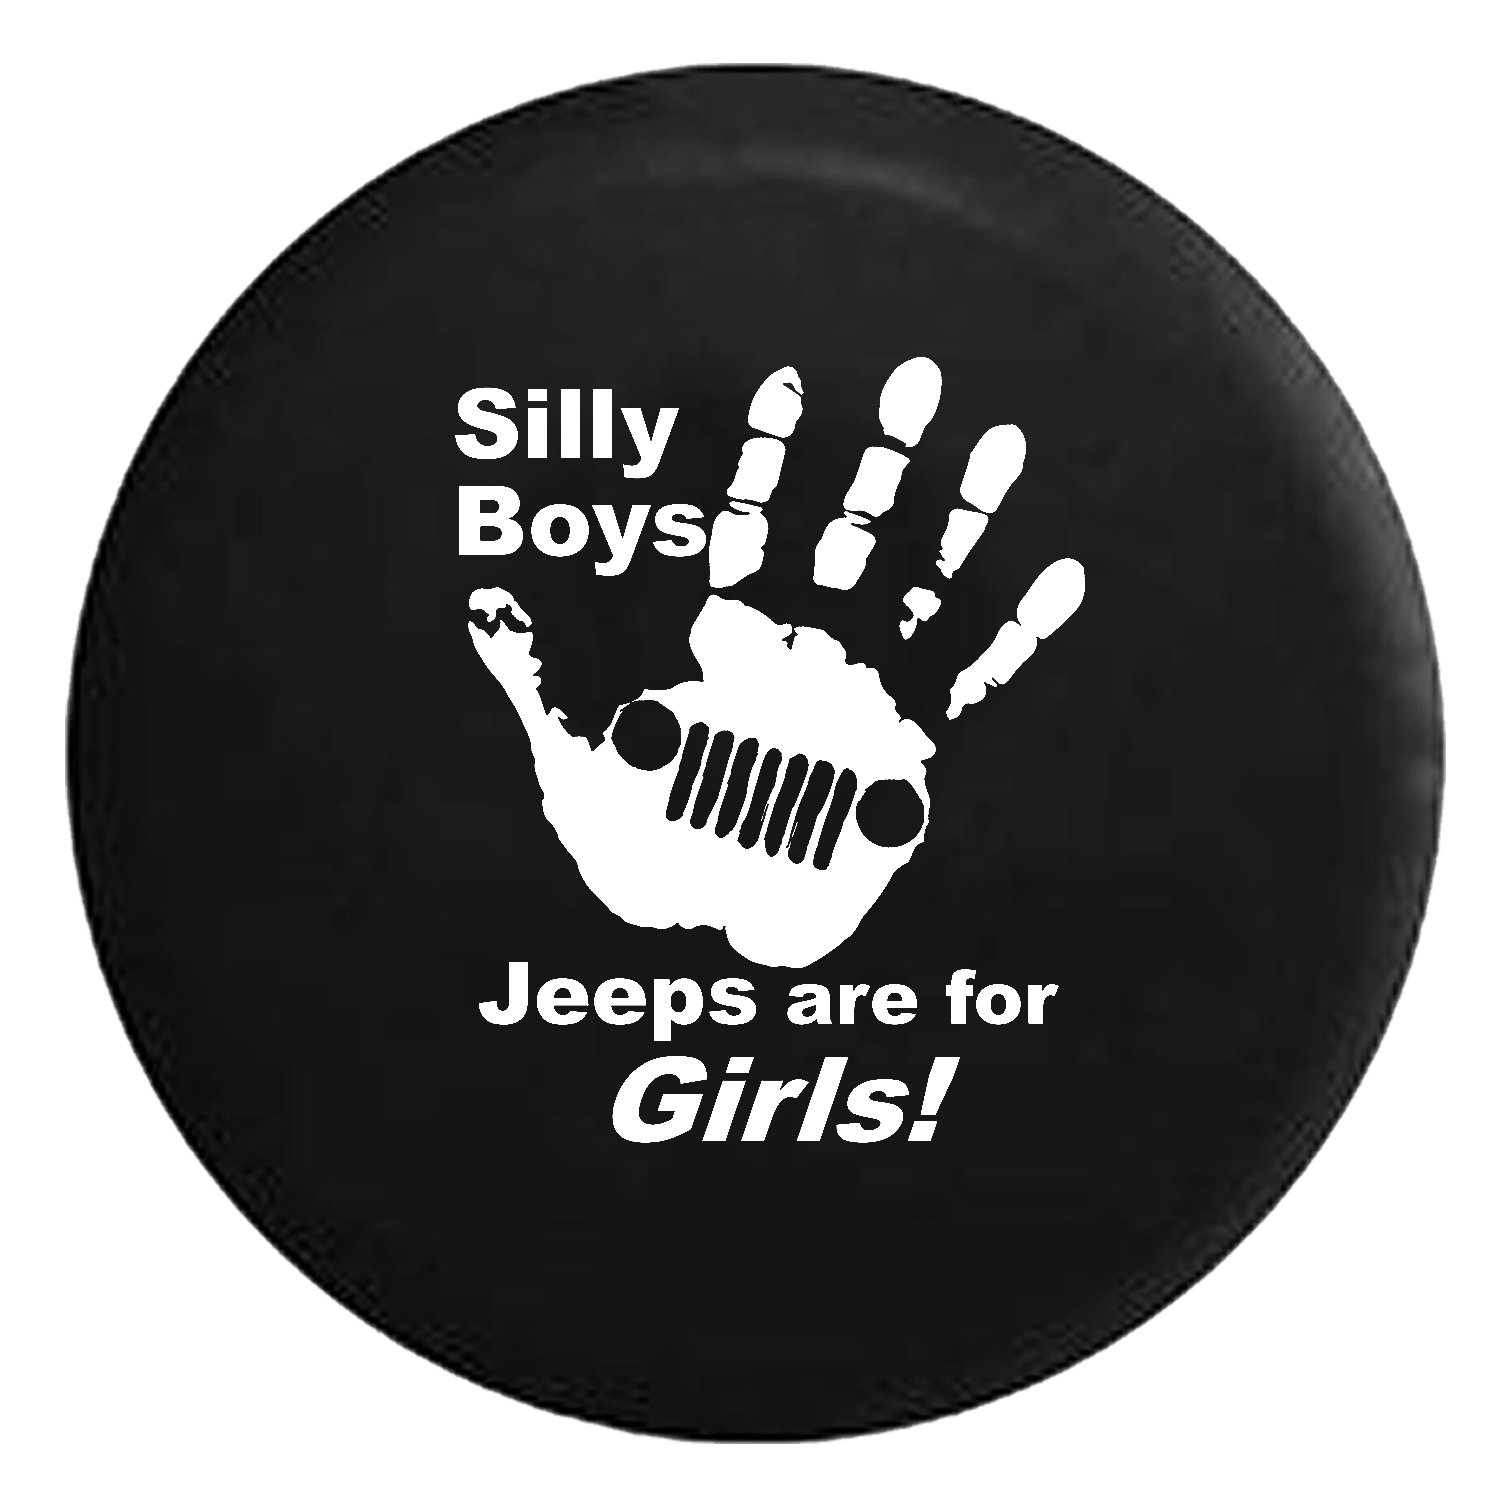 amazon purple silly boys jeeps are for girls wave jeep 1980 CJ7 Jeep Wrangler amazon purple silly boys jeeps are for girls wave jeep wrangler c er tire cover 31 in automotive